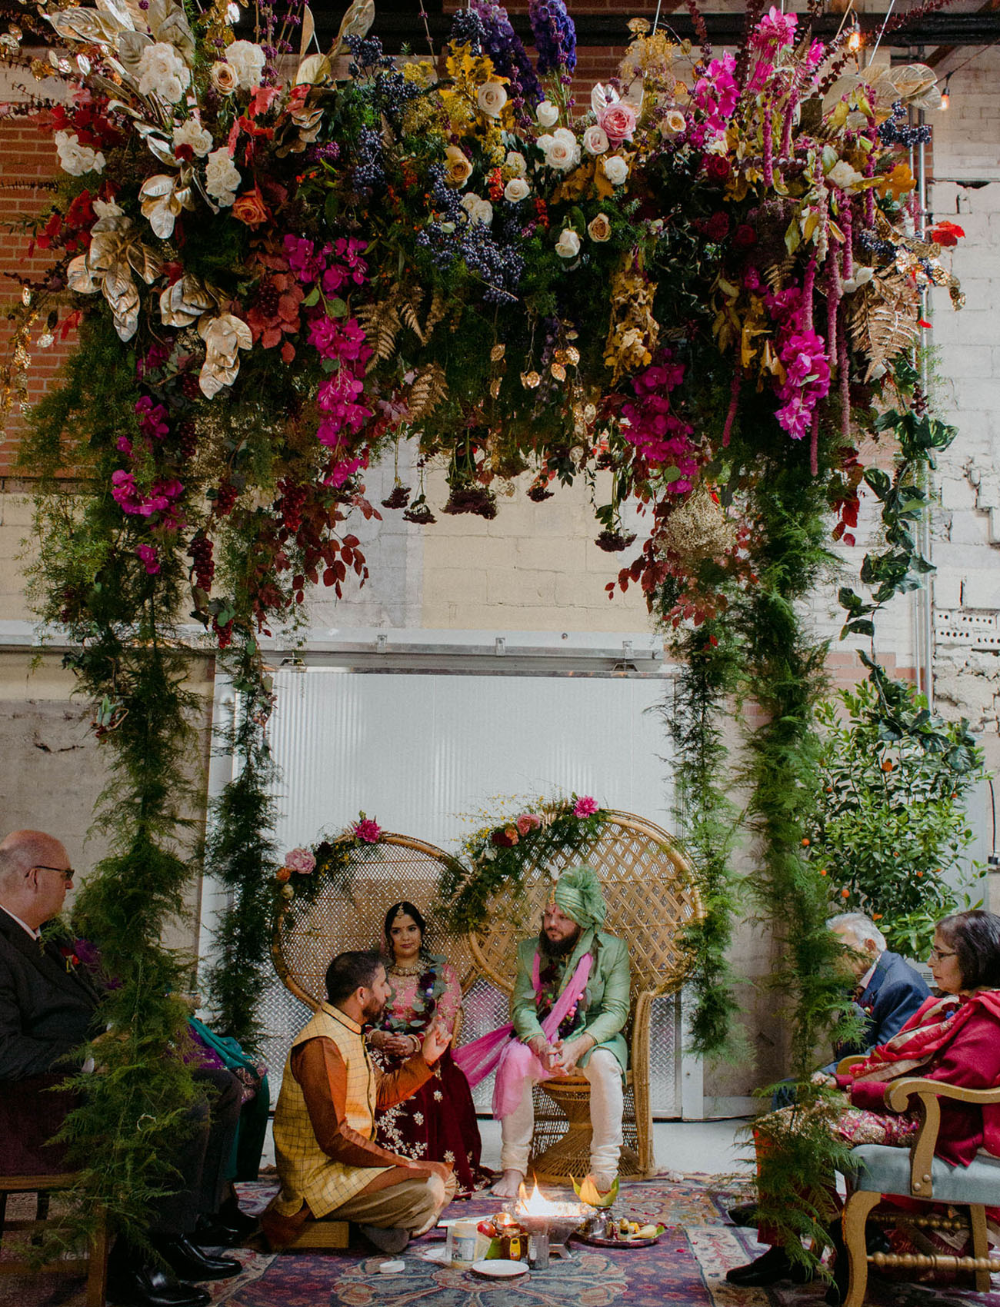 Eclectic + Colorful Urban Indian Wedding at a Craft Brewery! | Green Wedding Shoes -   18 wedding Indian ideas